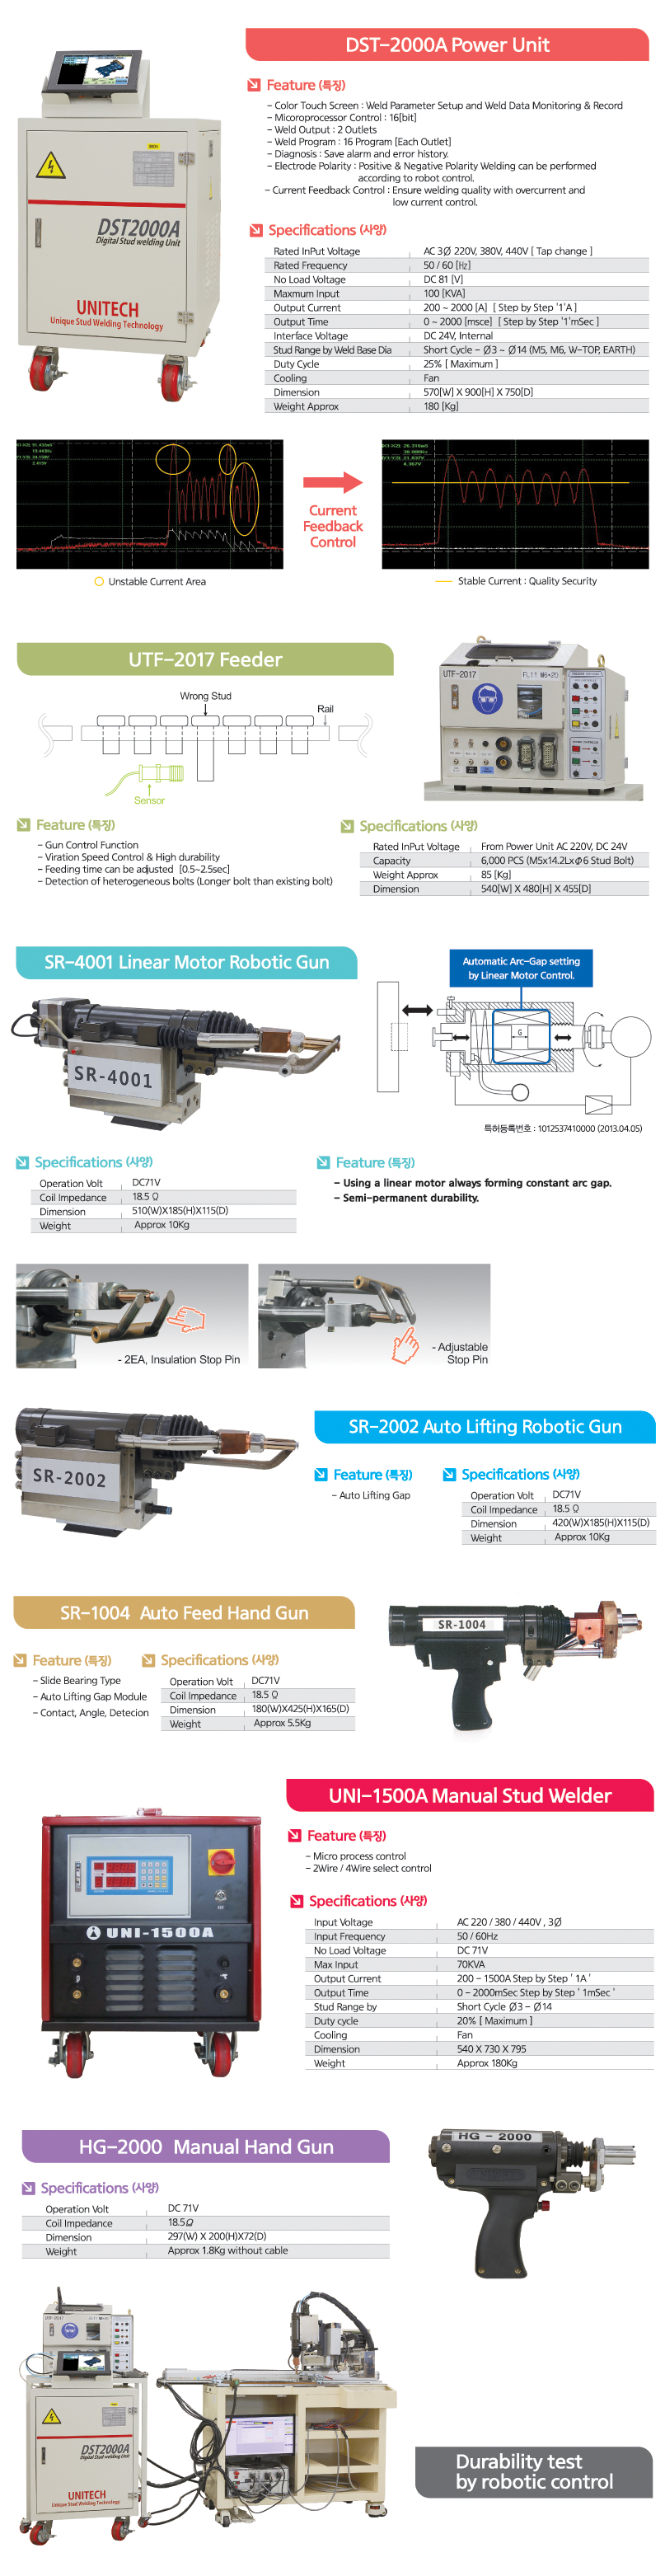 UNIWELL Linear Motor & Touch Screen Control